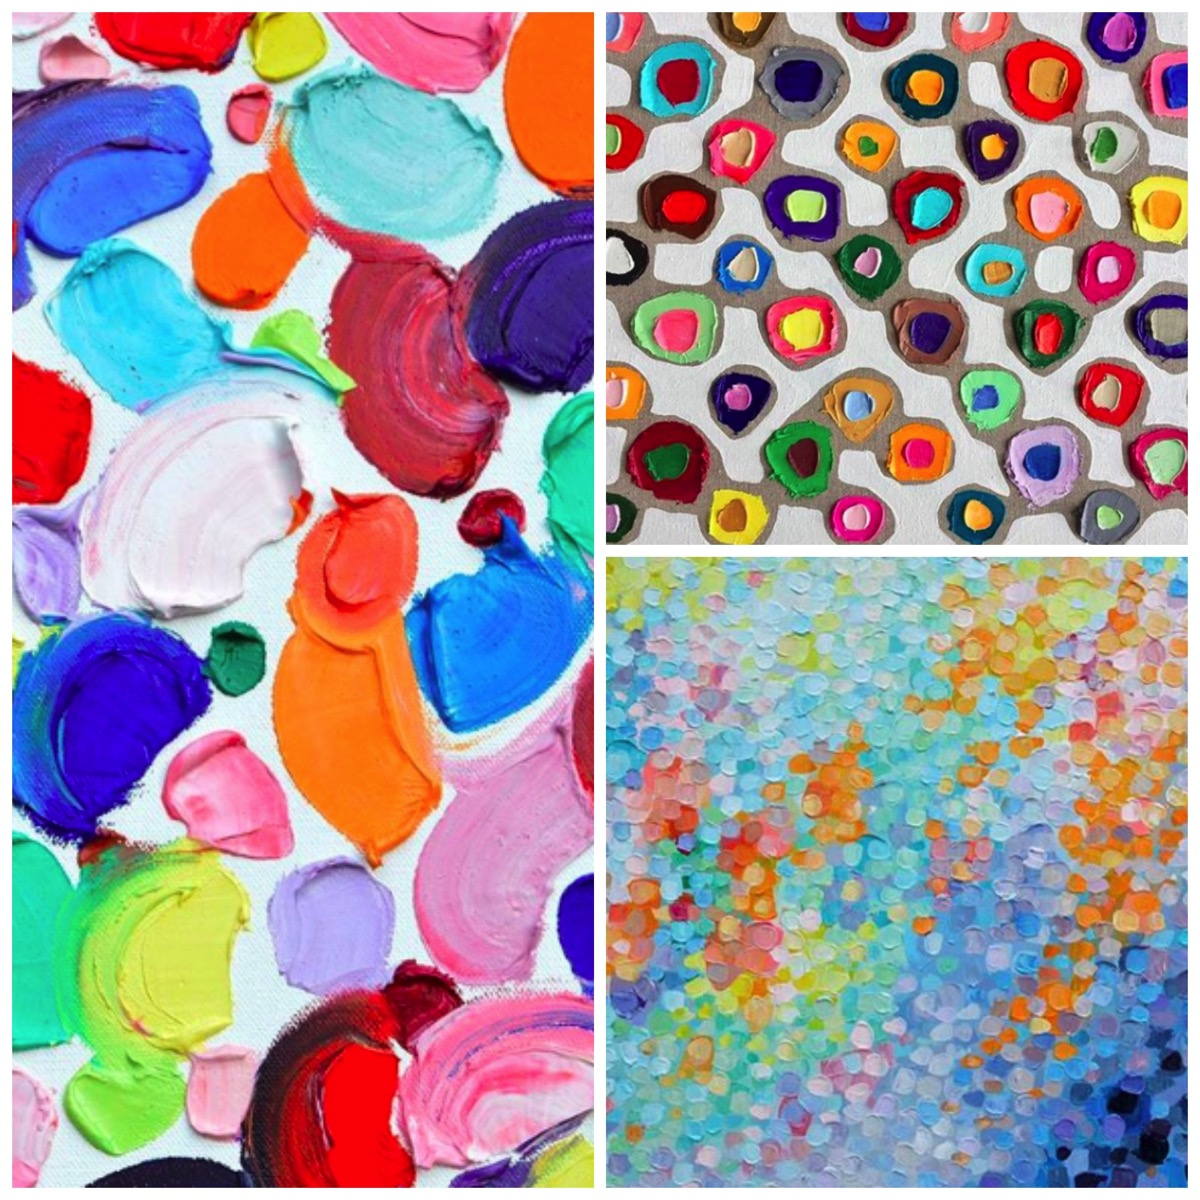 Marie ann coolick colorful abstract paintings and prints for home